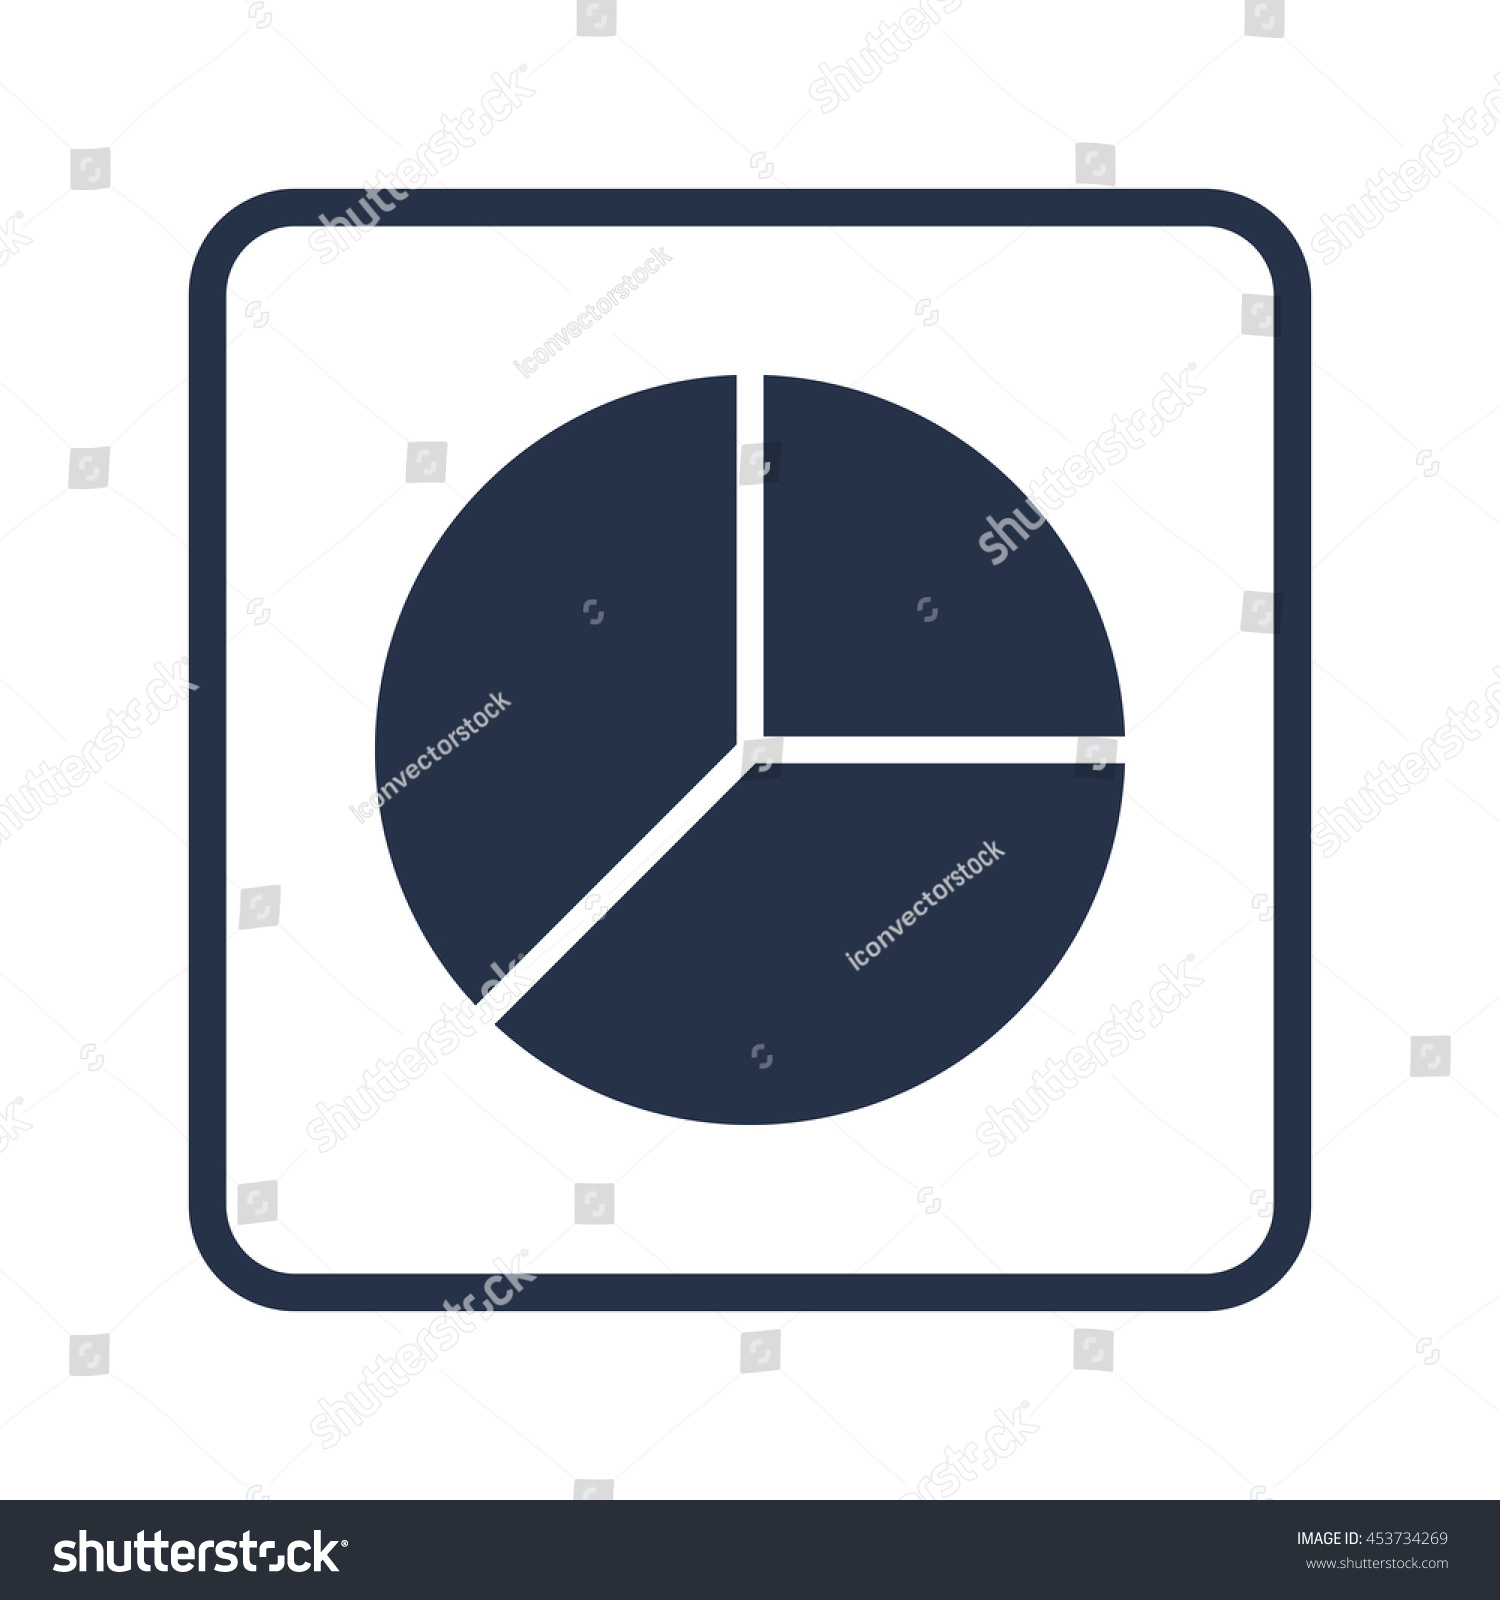 Wiring Diagram Excel 33rko 26 Images Clic Mini Fuse Box Stock Vector Illustration Of Statistics Pie Chart With Parts Icon Premium Quality Web 453734269